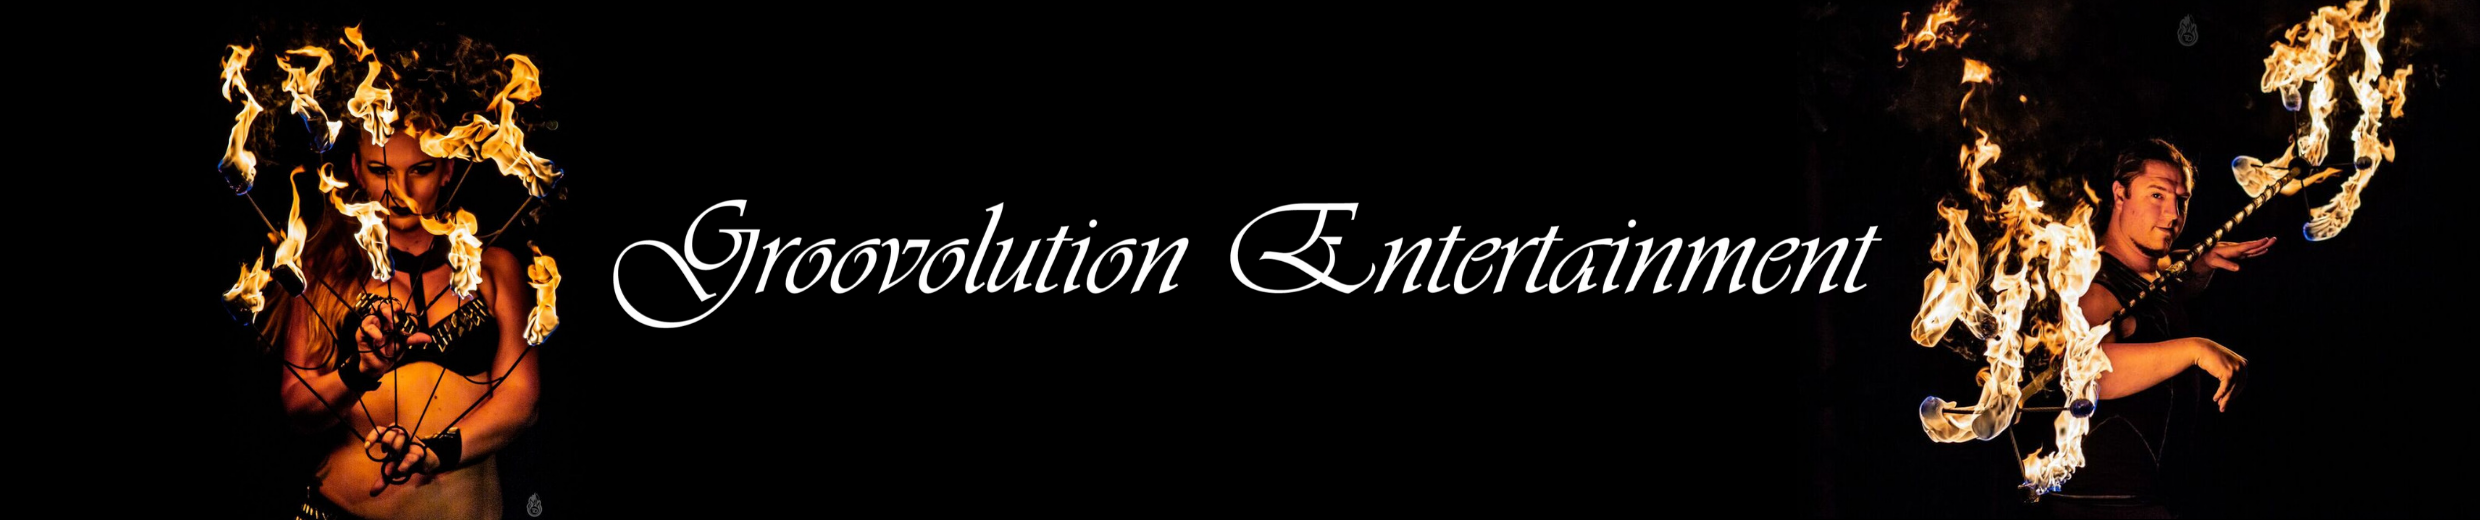 Groovolution Entertainment